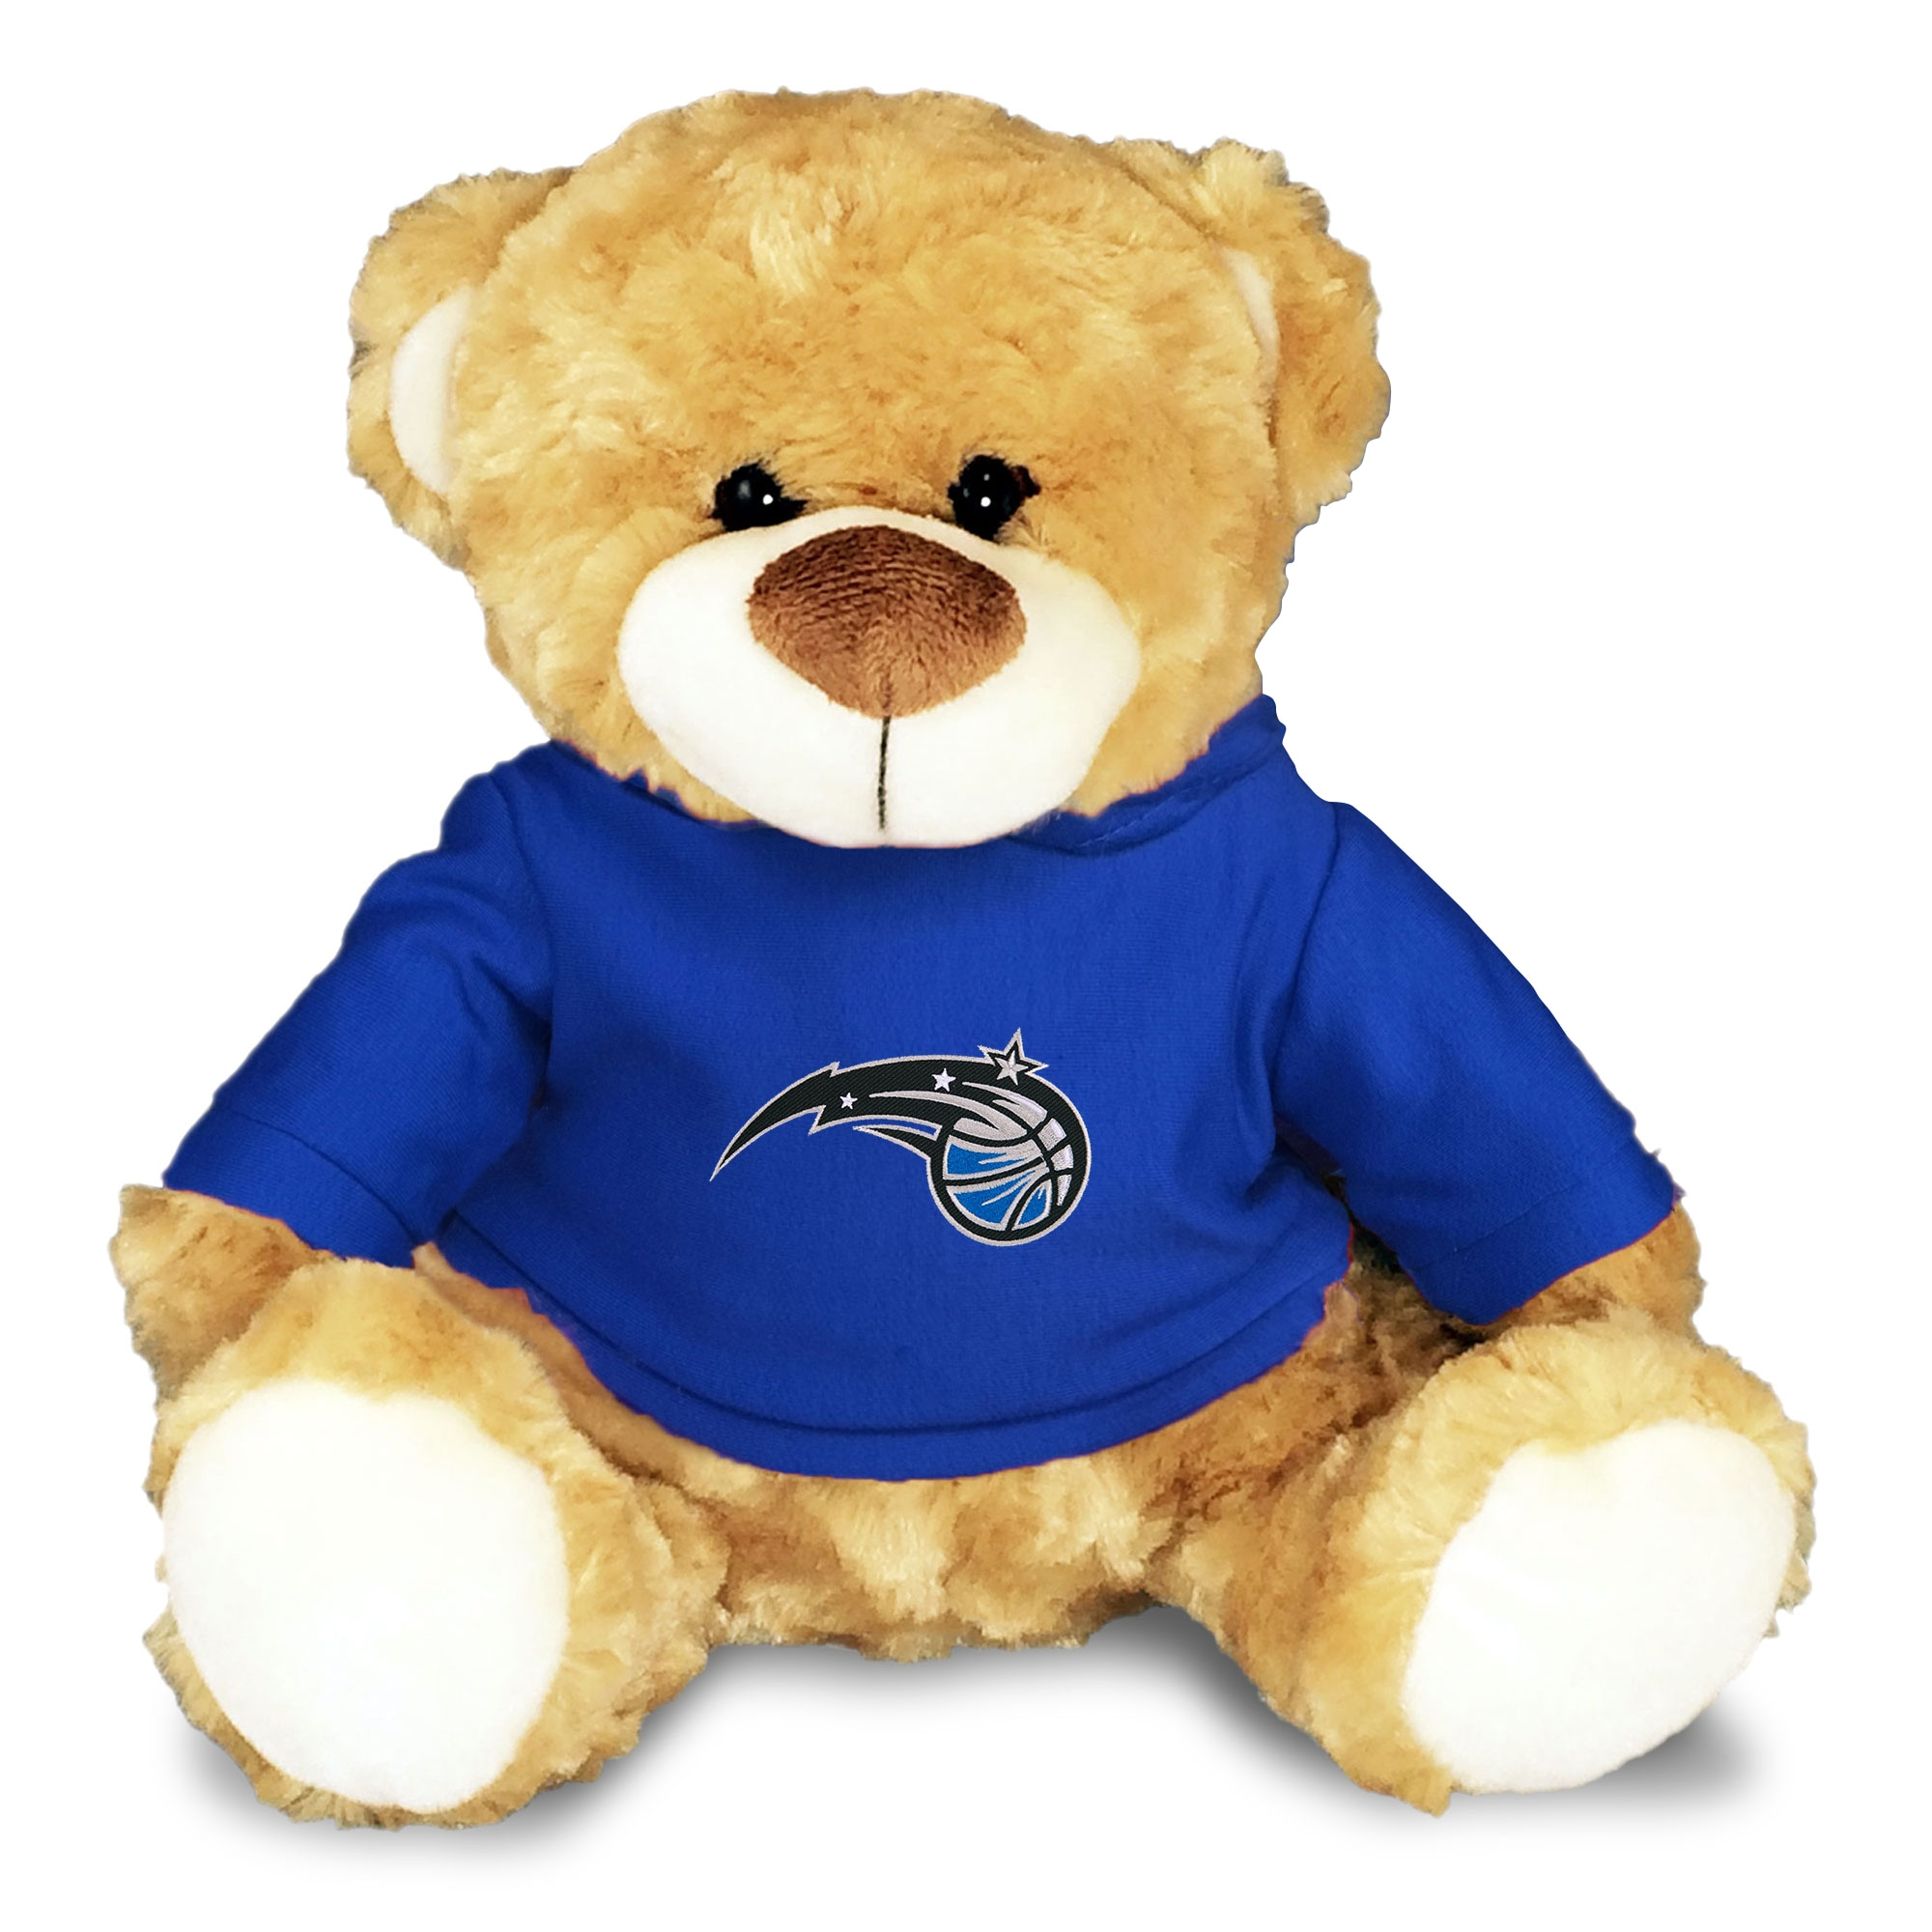 Orlando Magic Personalized 10'' Plush Bear - Blue